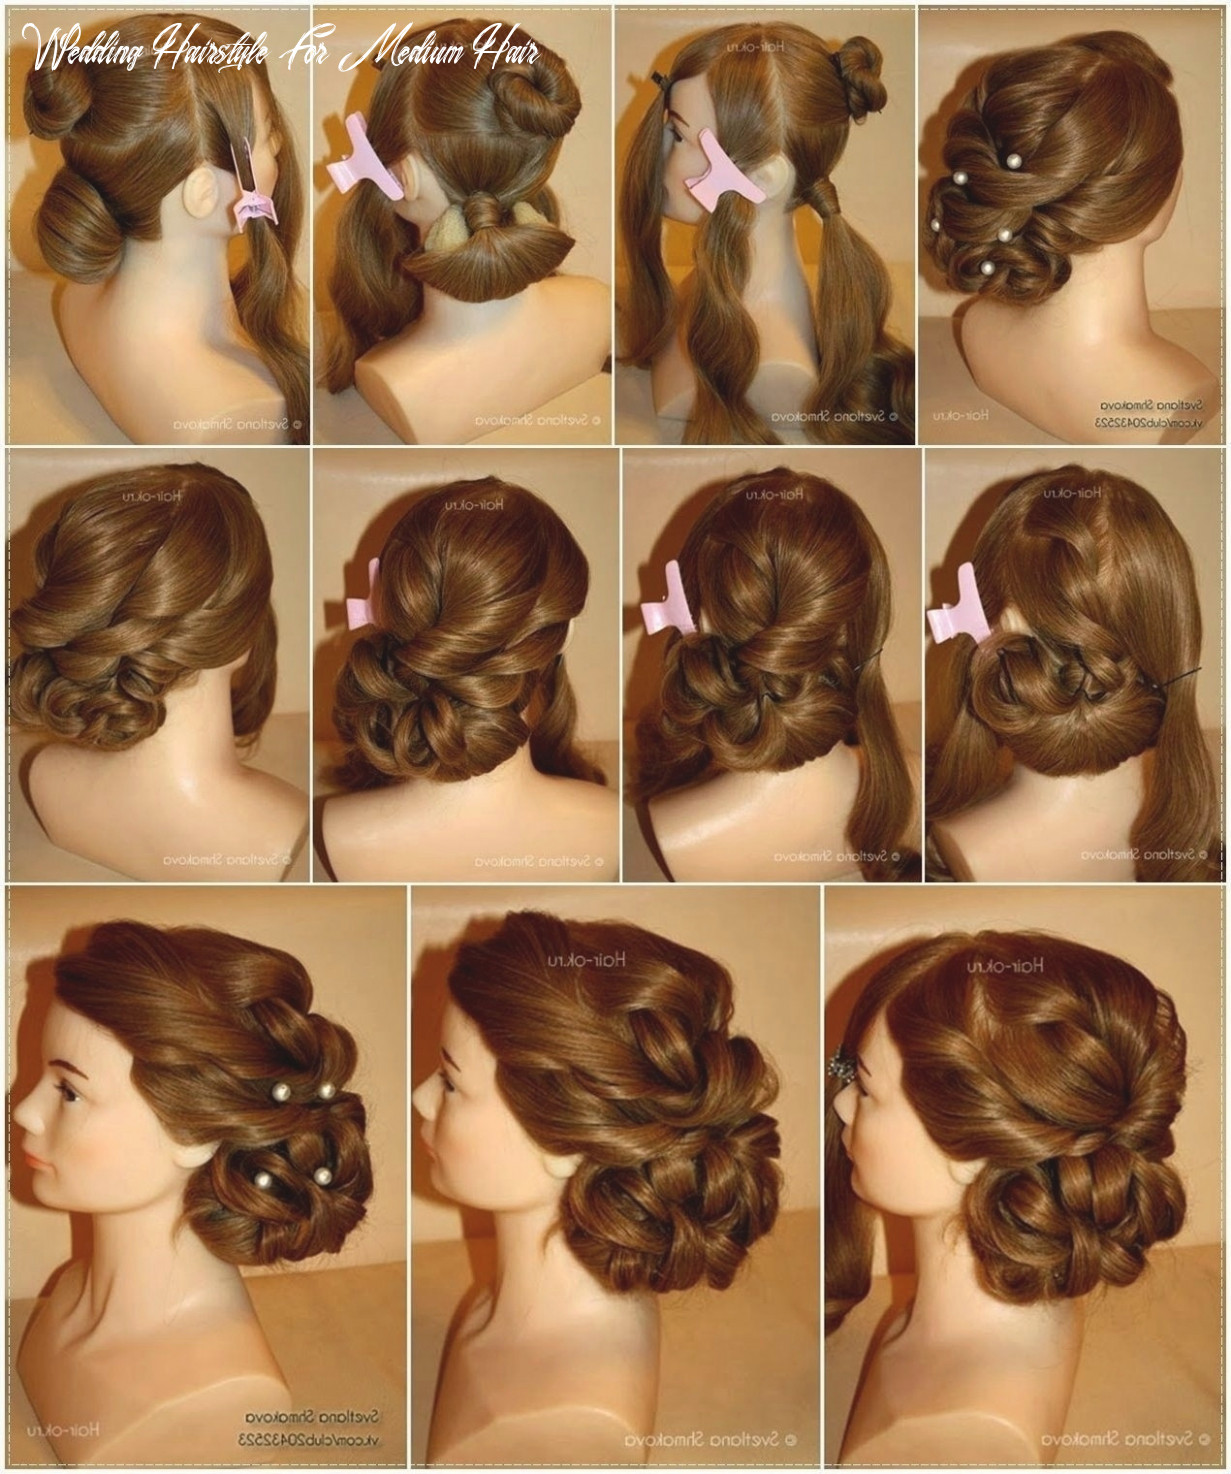 Updo Bridal Hairstyles Awesome 12 Indian Wedding Hairstyles for ...